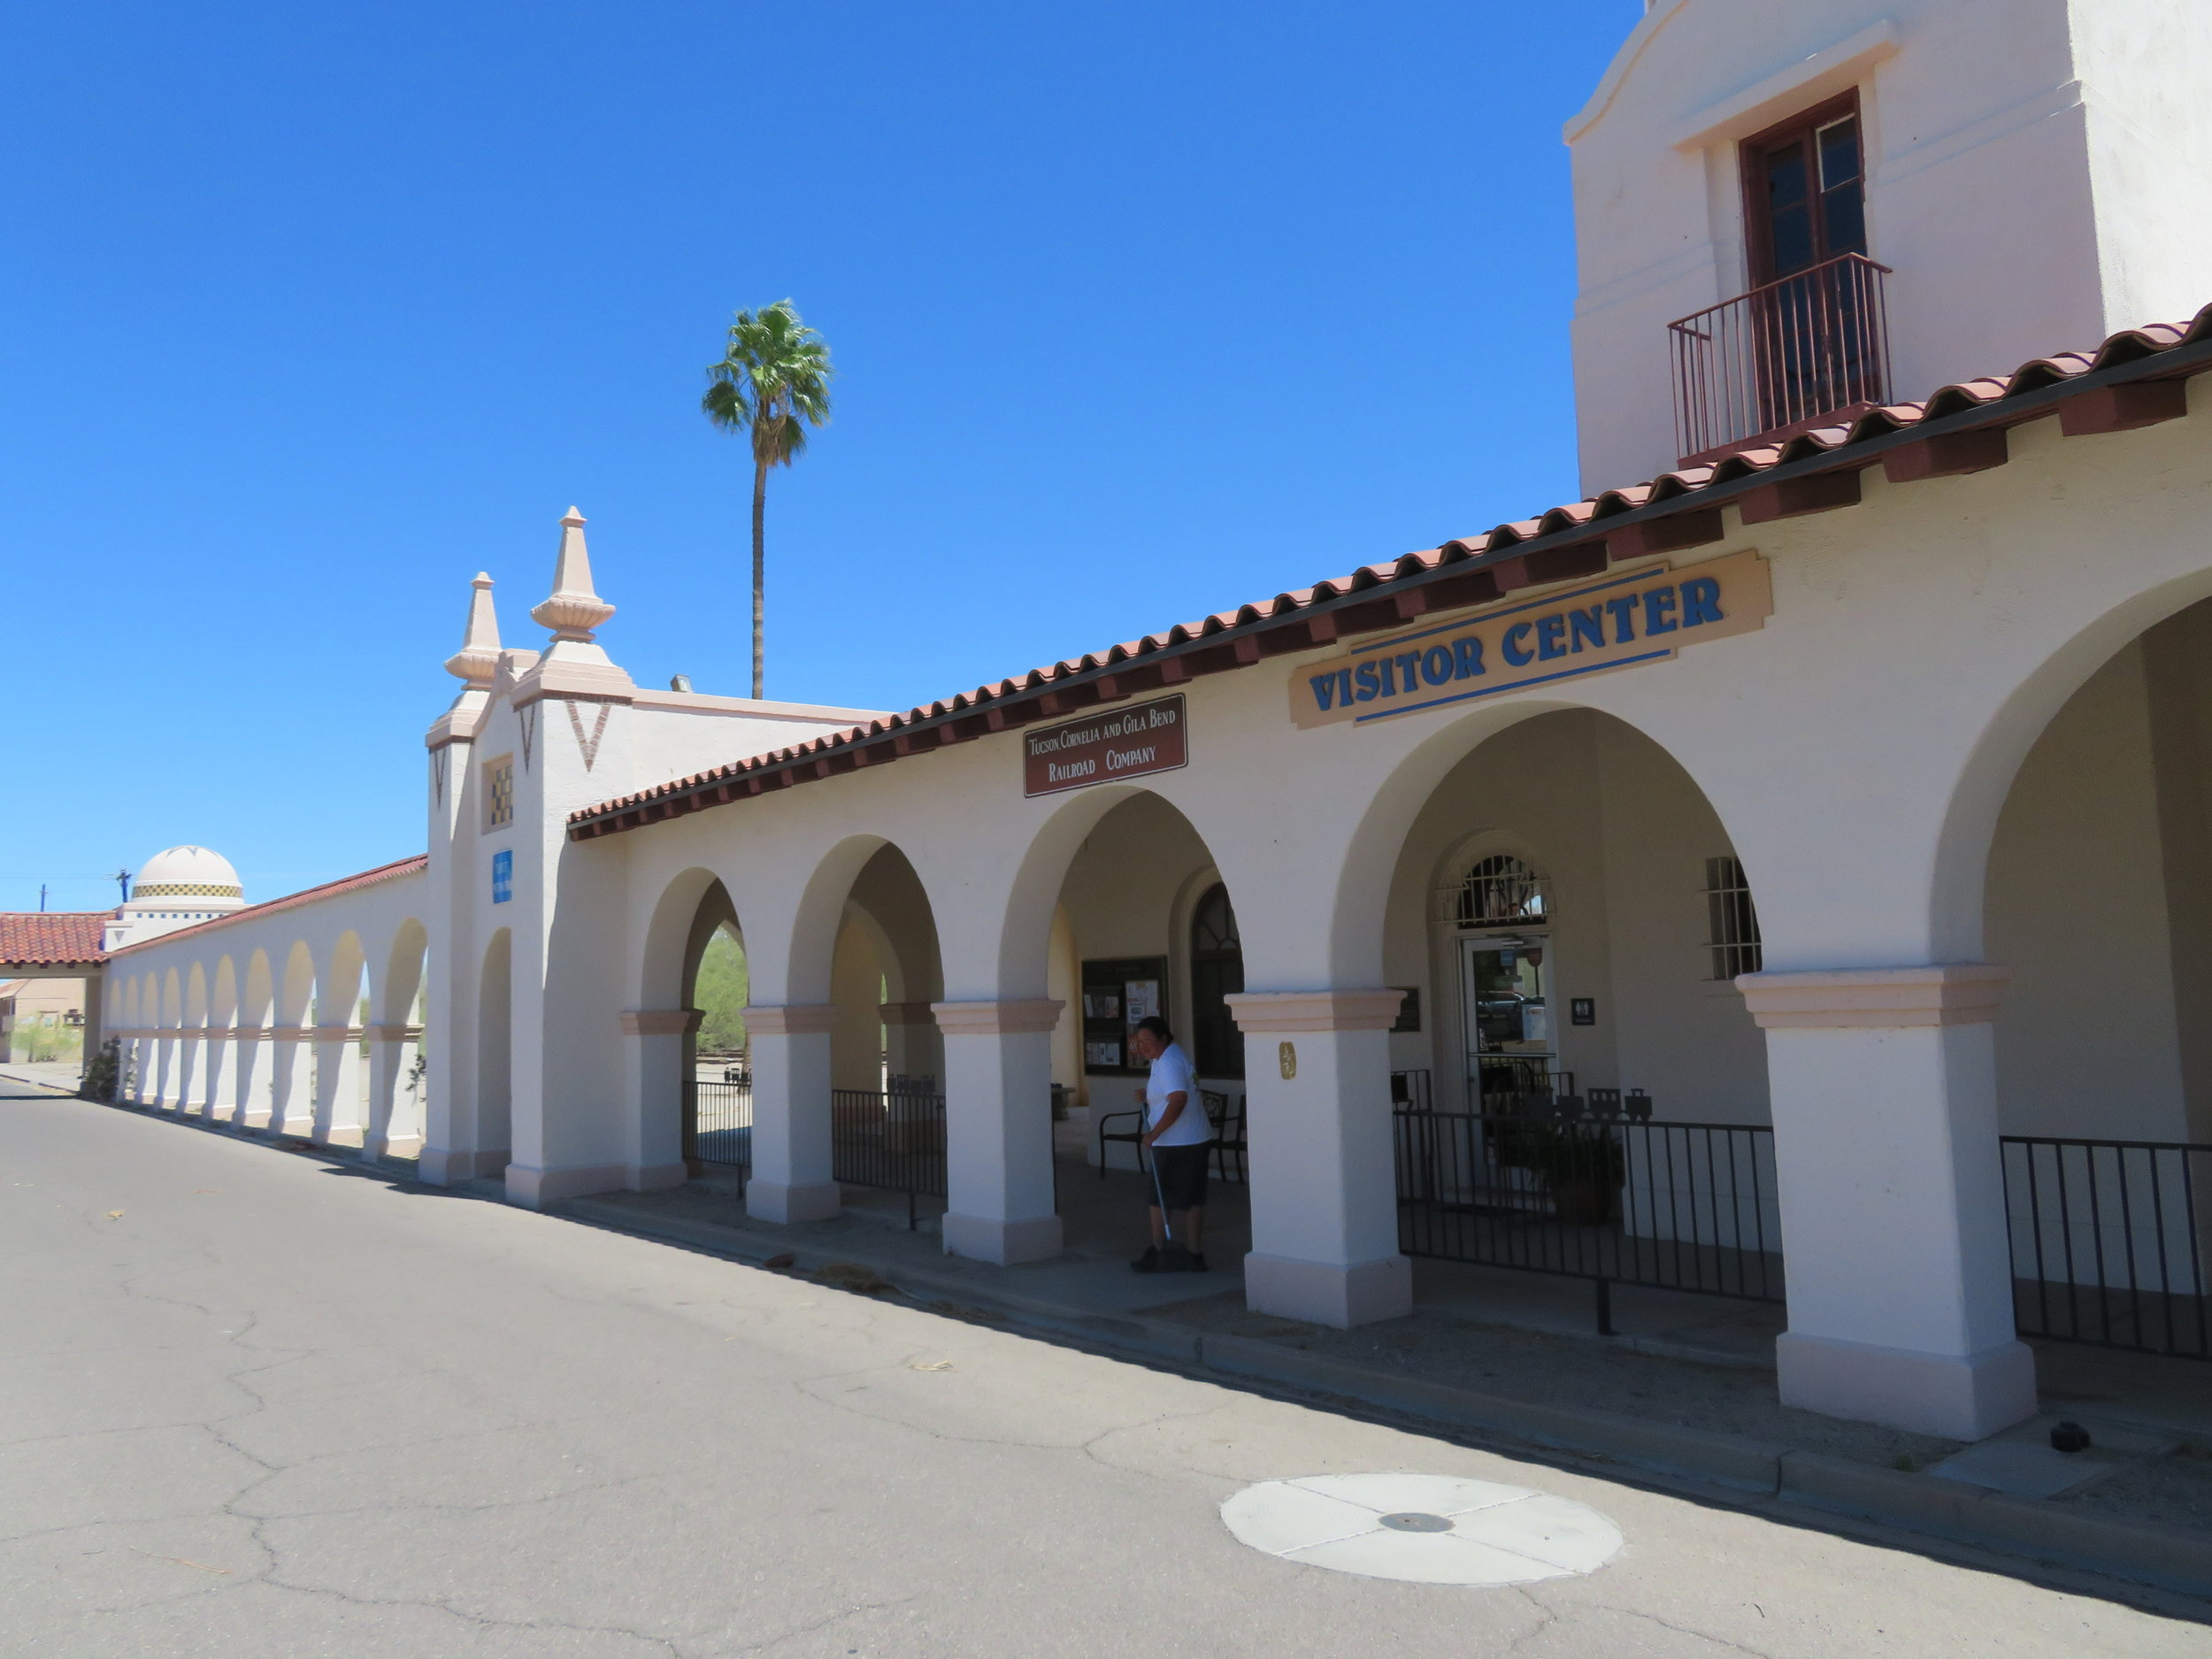 The old railroad station has been re-purposed as a Visitor's Center.